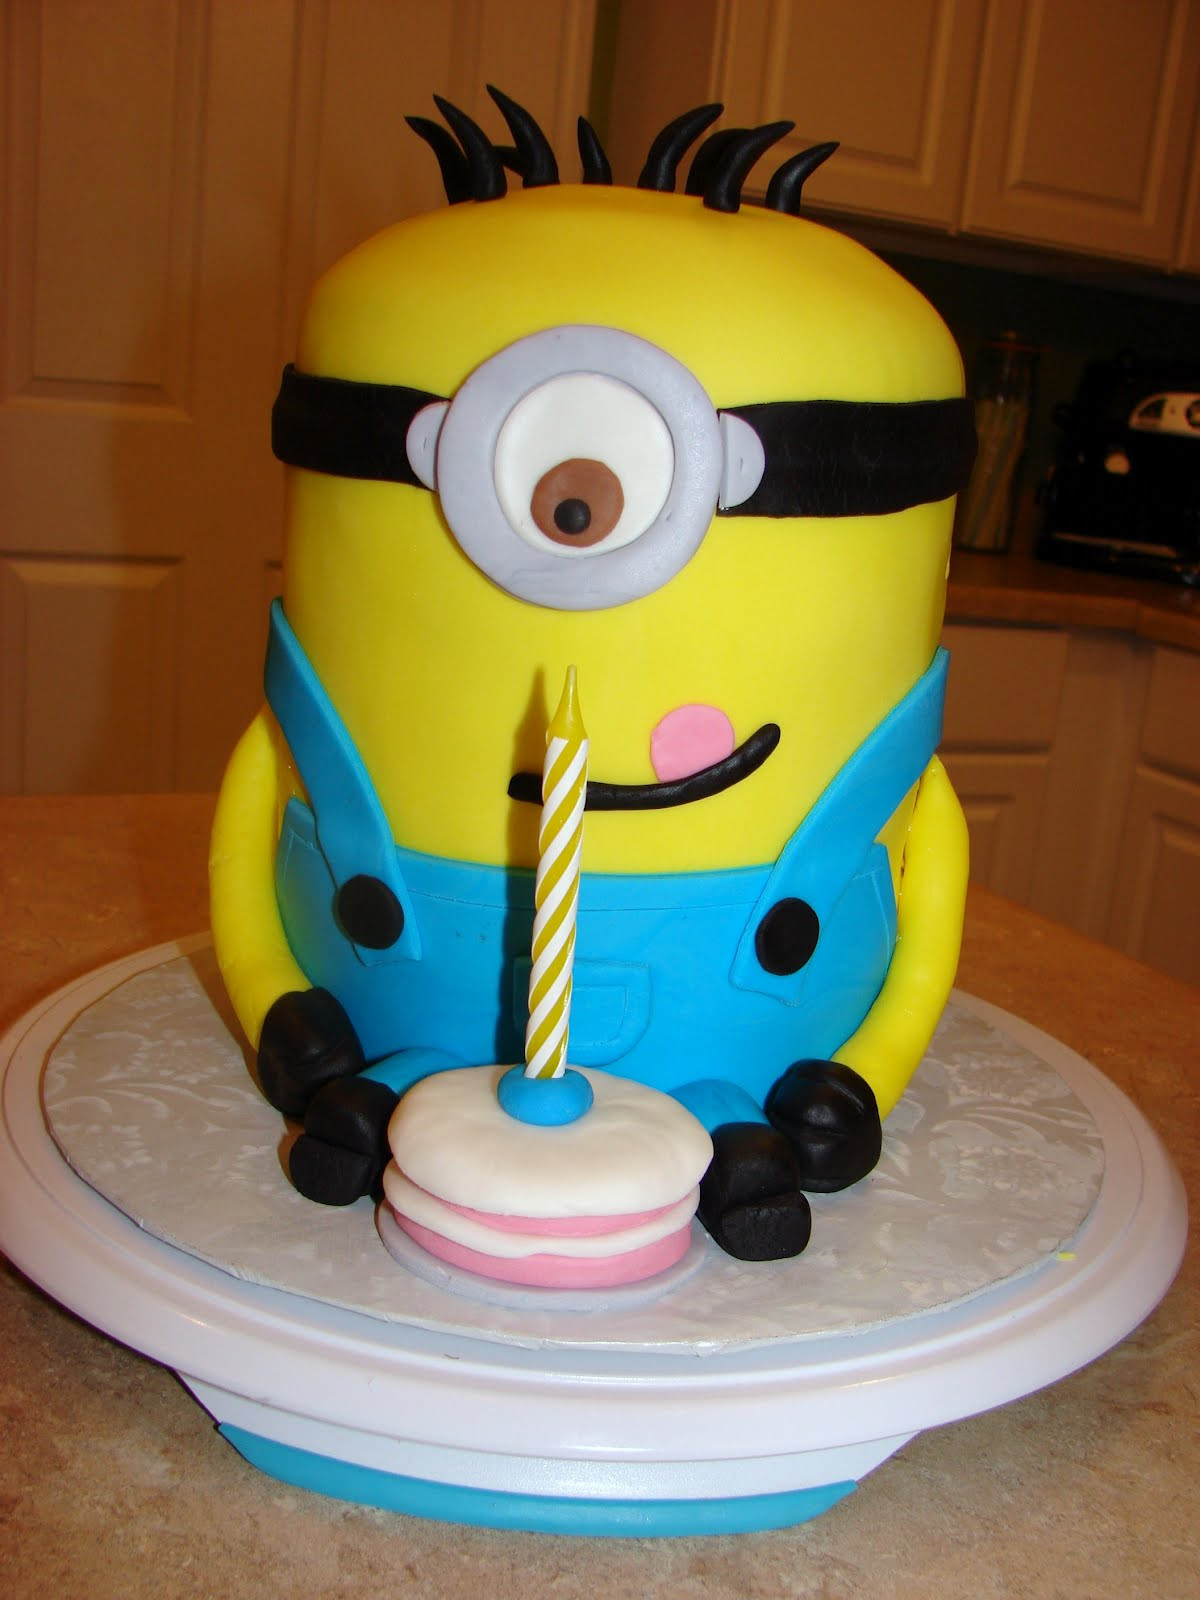 Best ideas about Minions Birthday Cake . Save or Pin Ipsy Bipsy Bake Shop Minion Cake Now.